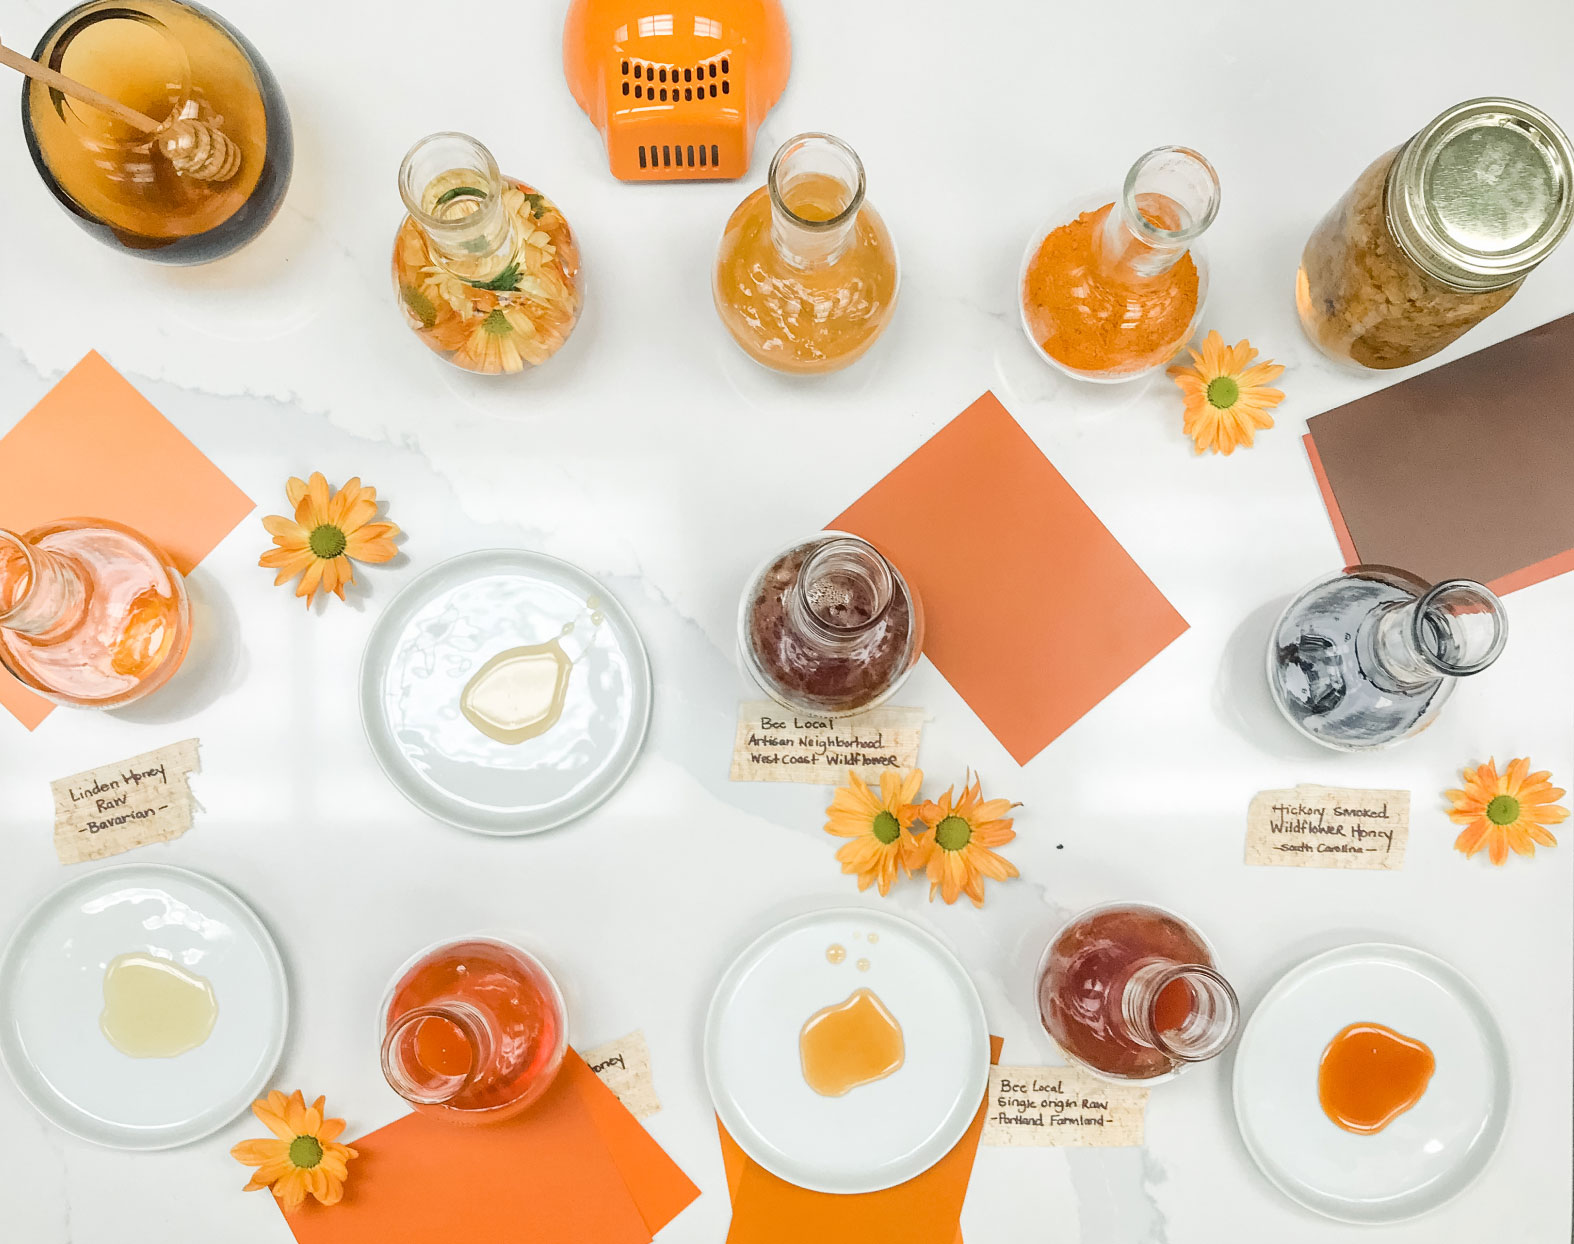 Several bottles of honey accompanied by their select dishes.